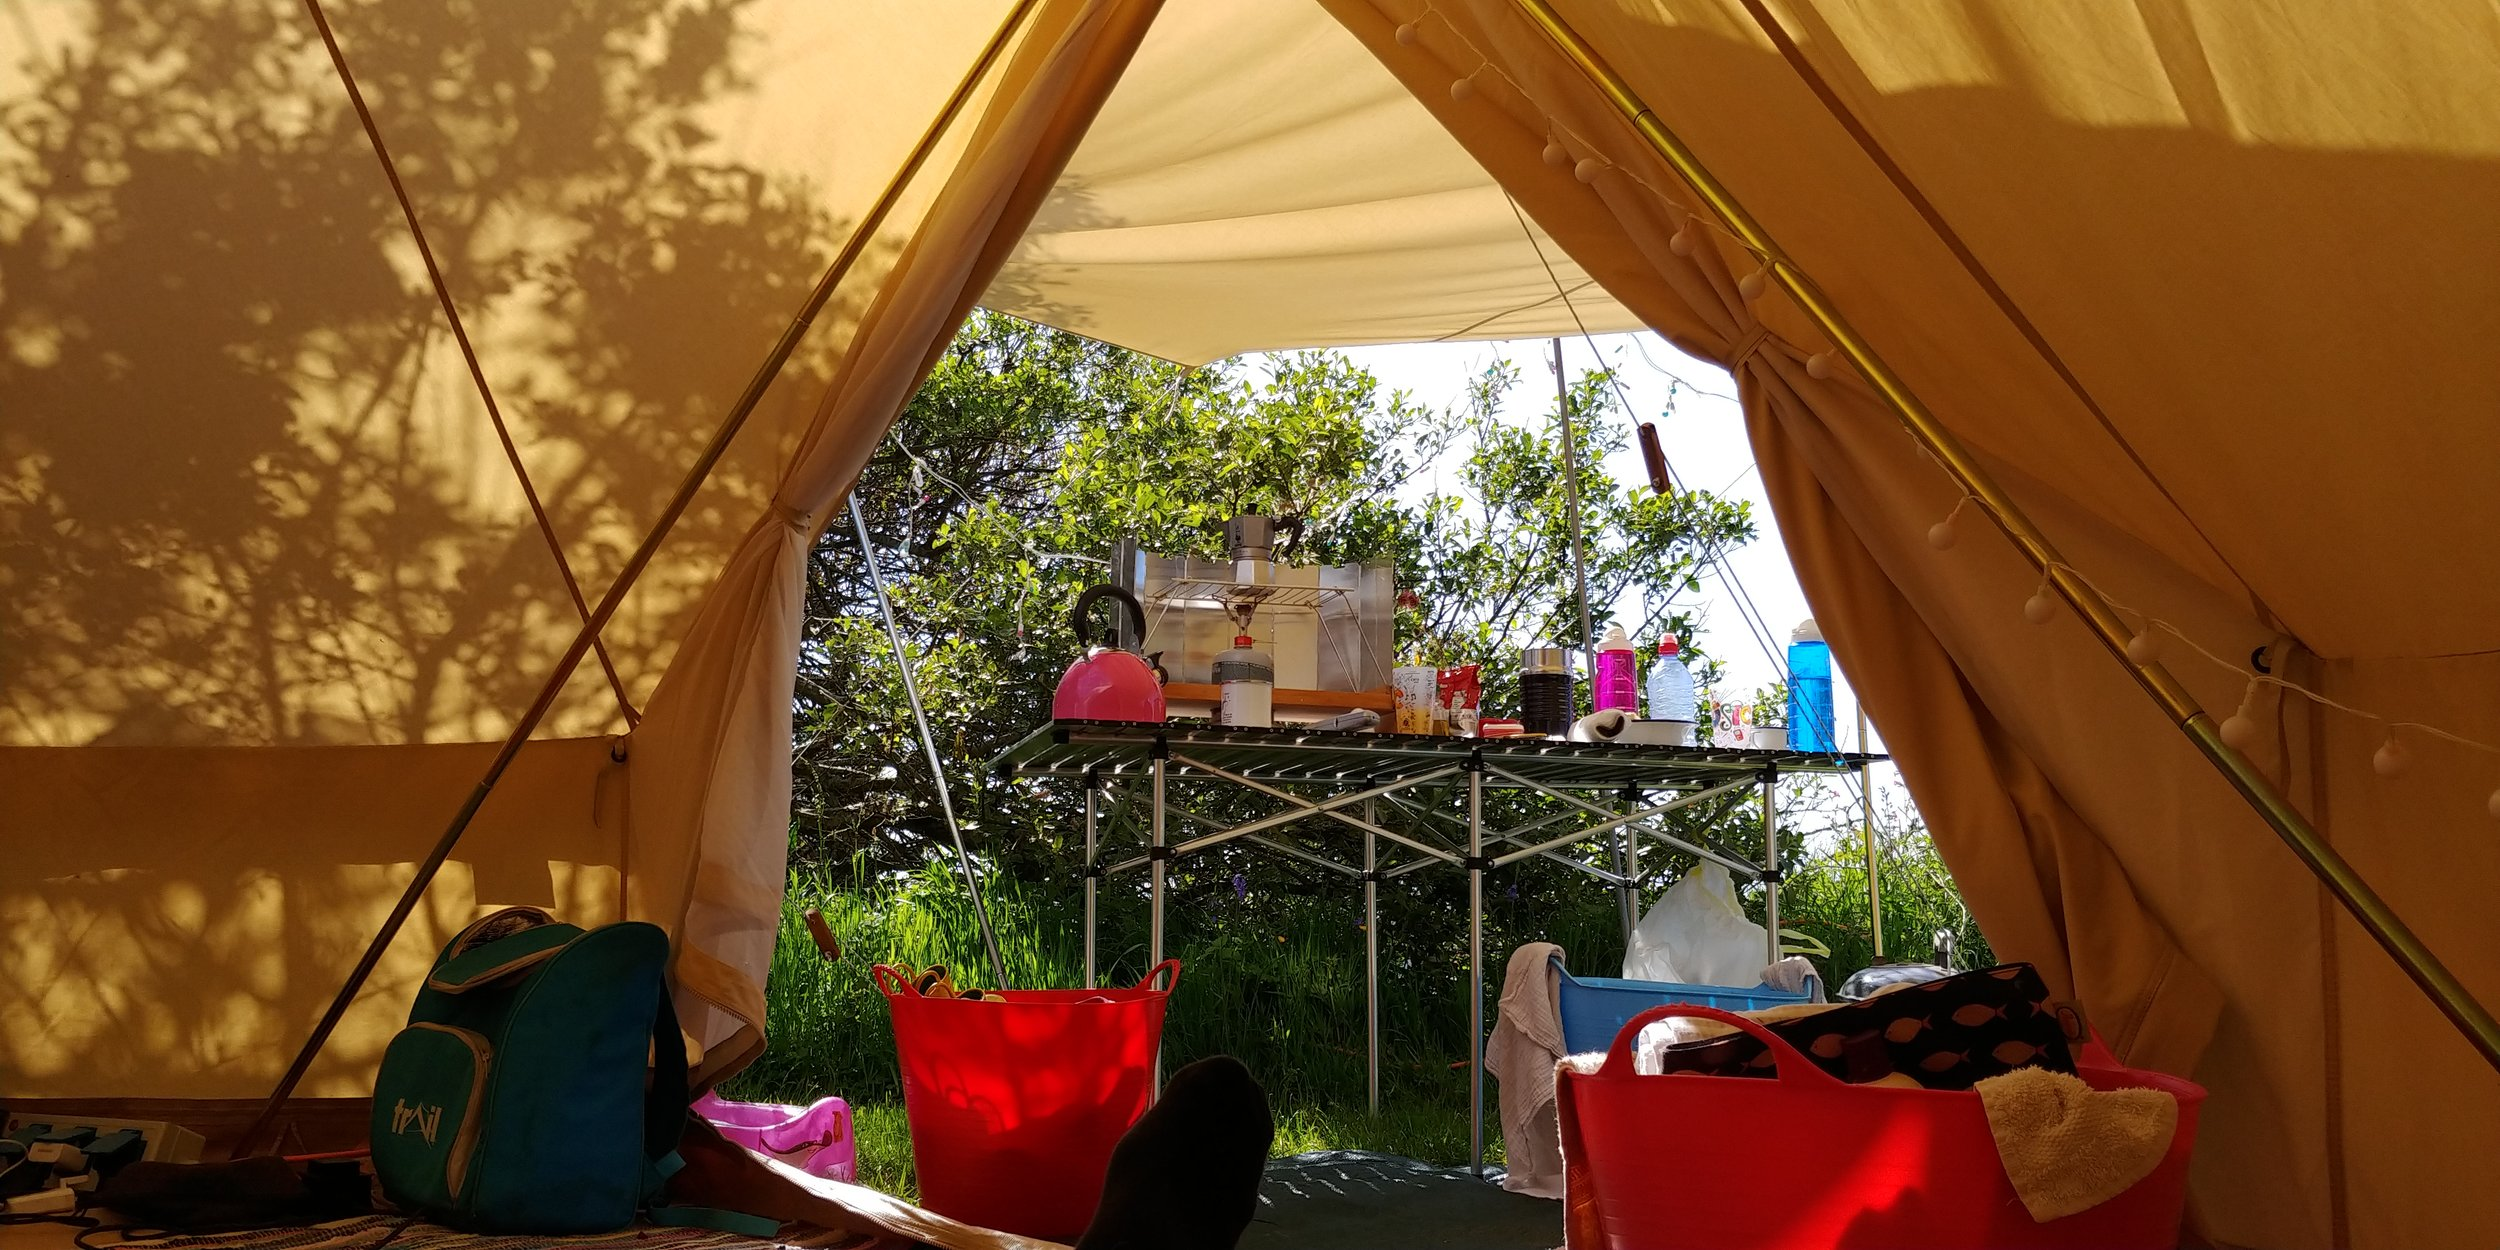 Camping in our bell tent in Wales earlier this year.